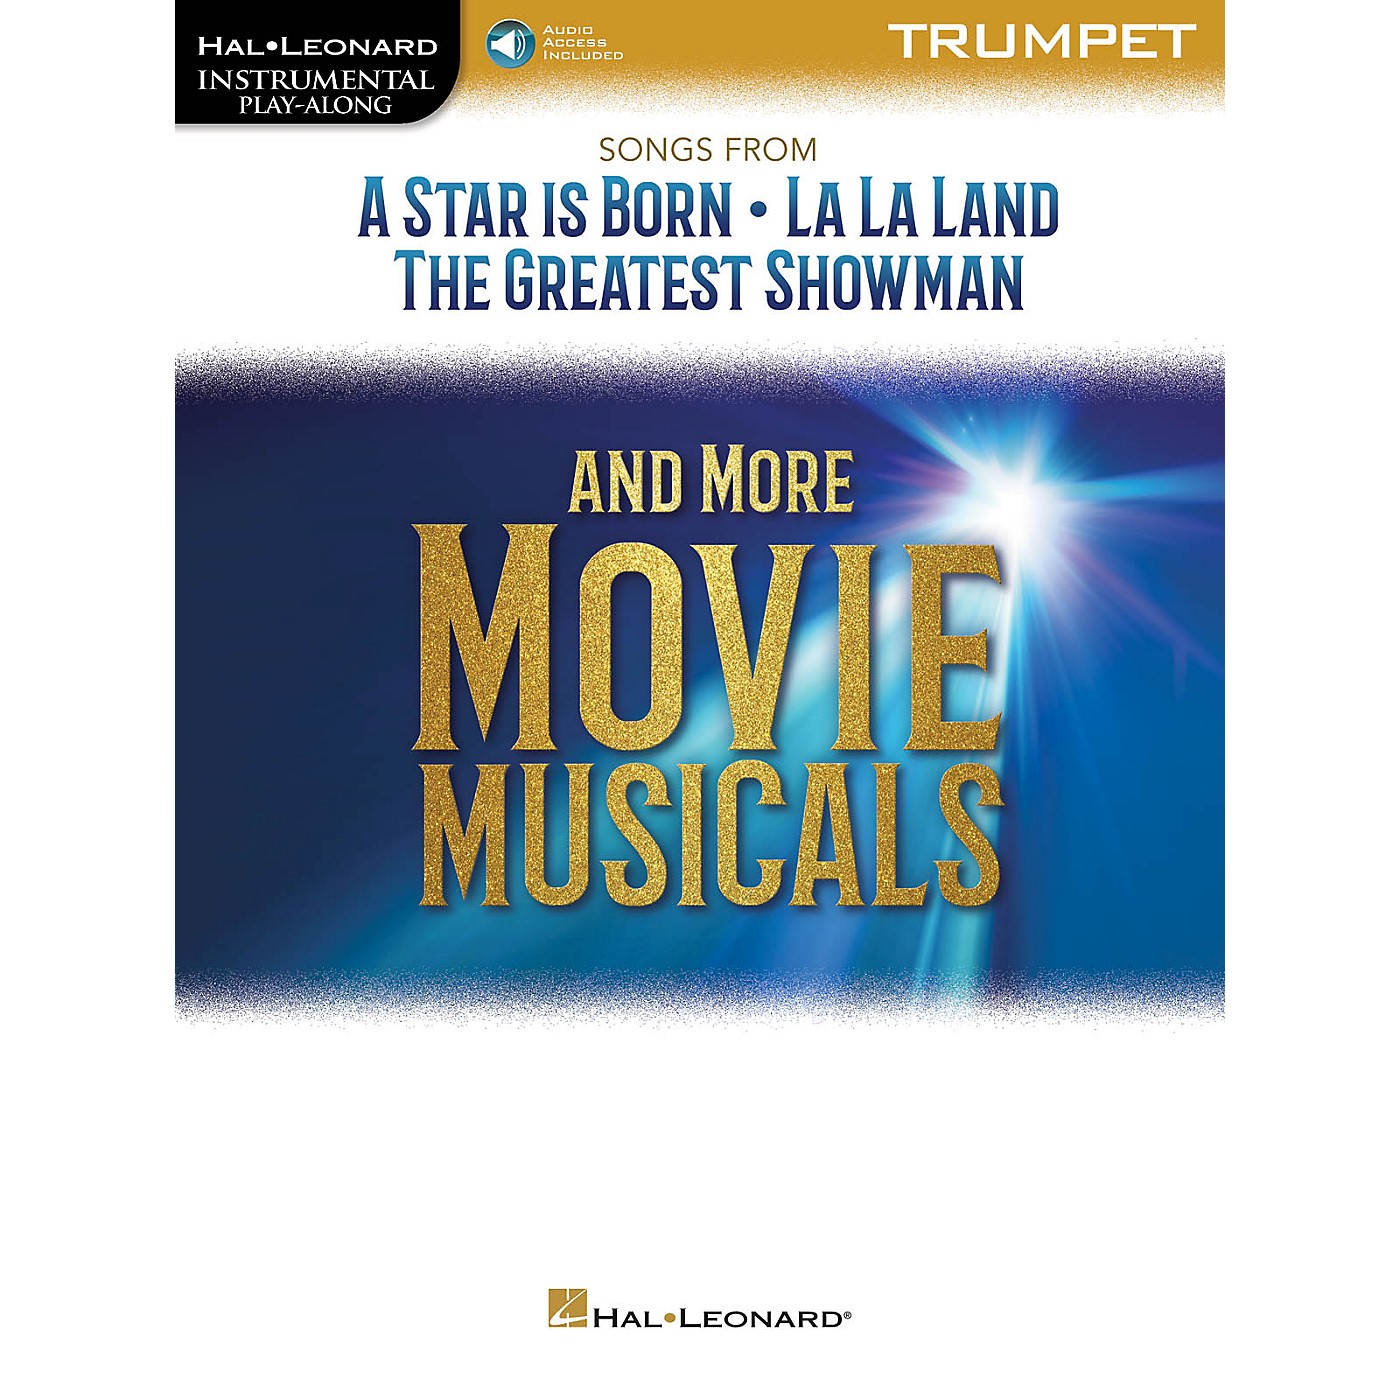 Hal Leonard Songs from A Star Is Born, La La Land and The Greatest Showman Instrumental Play-Along for Trumpet Book/Audio Online thumbnail